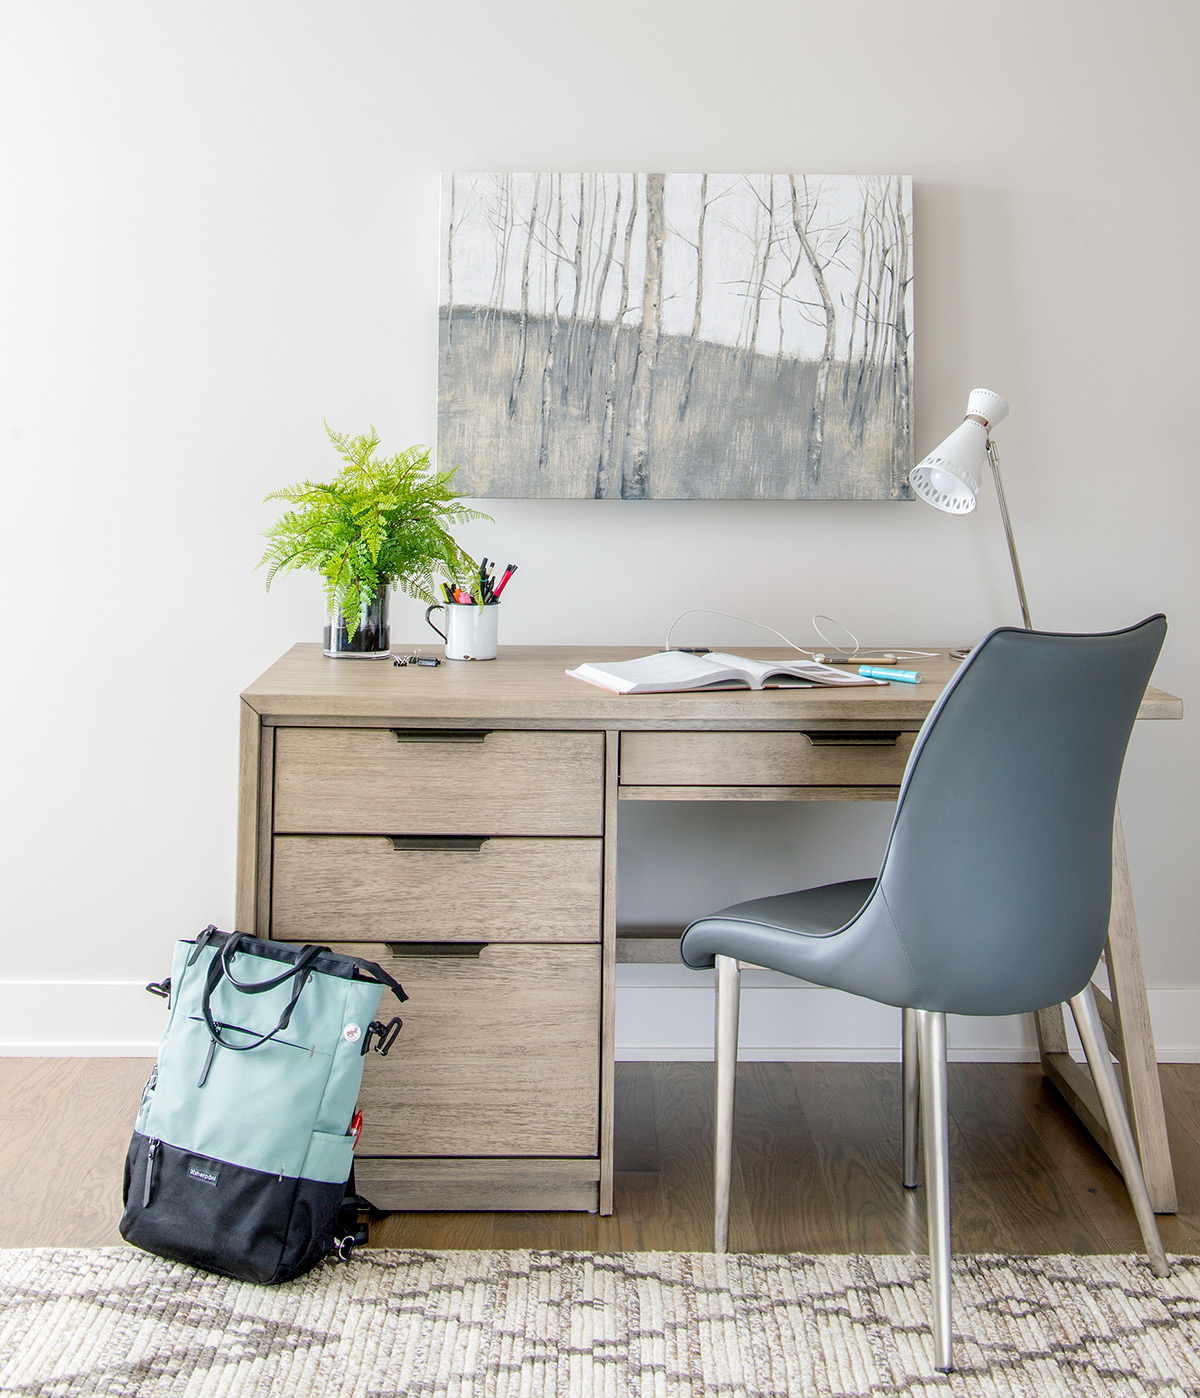 Rustic modern home office desk - love this fresh neutral space!